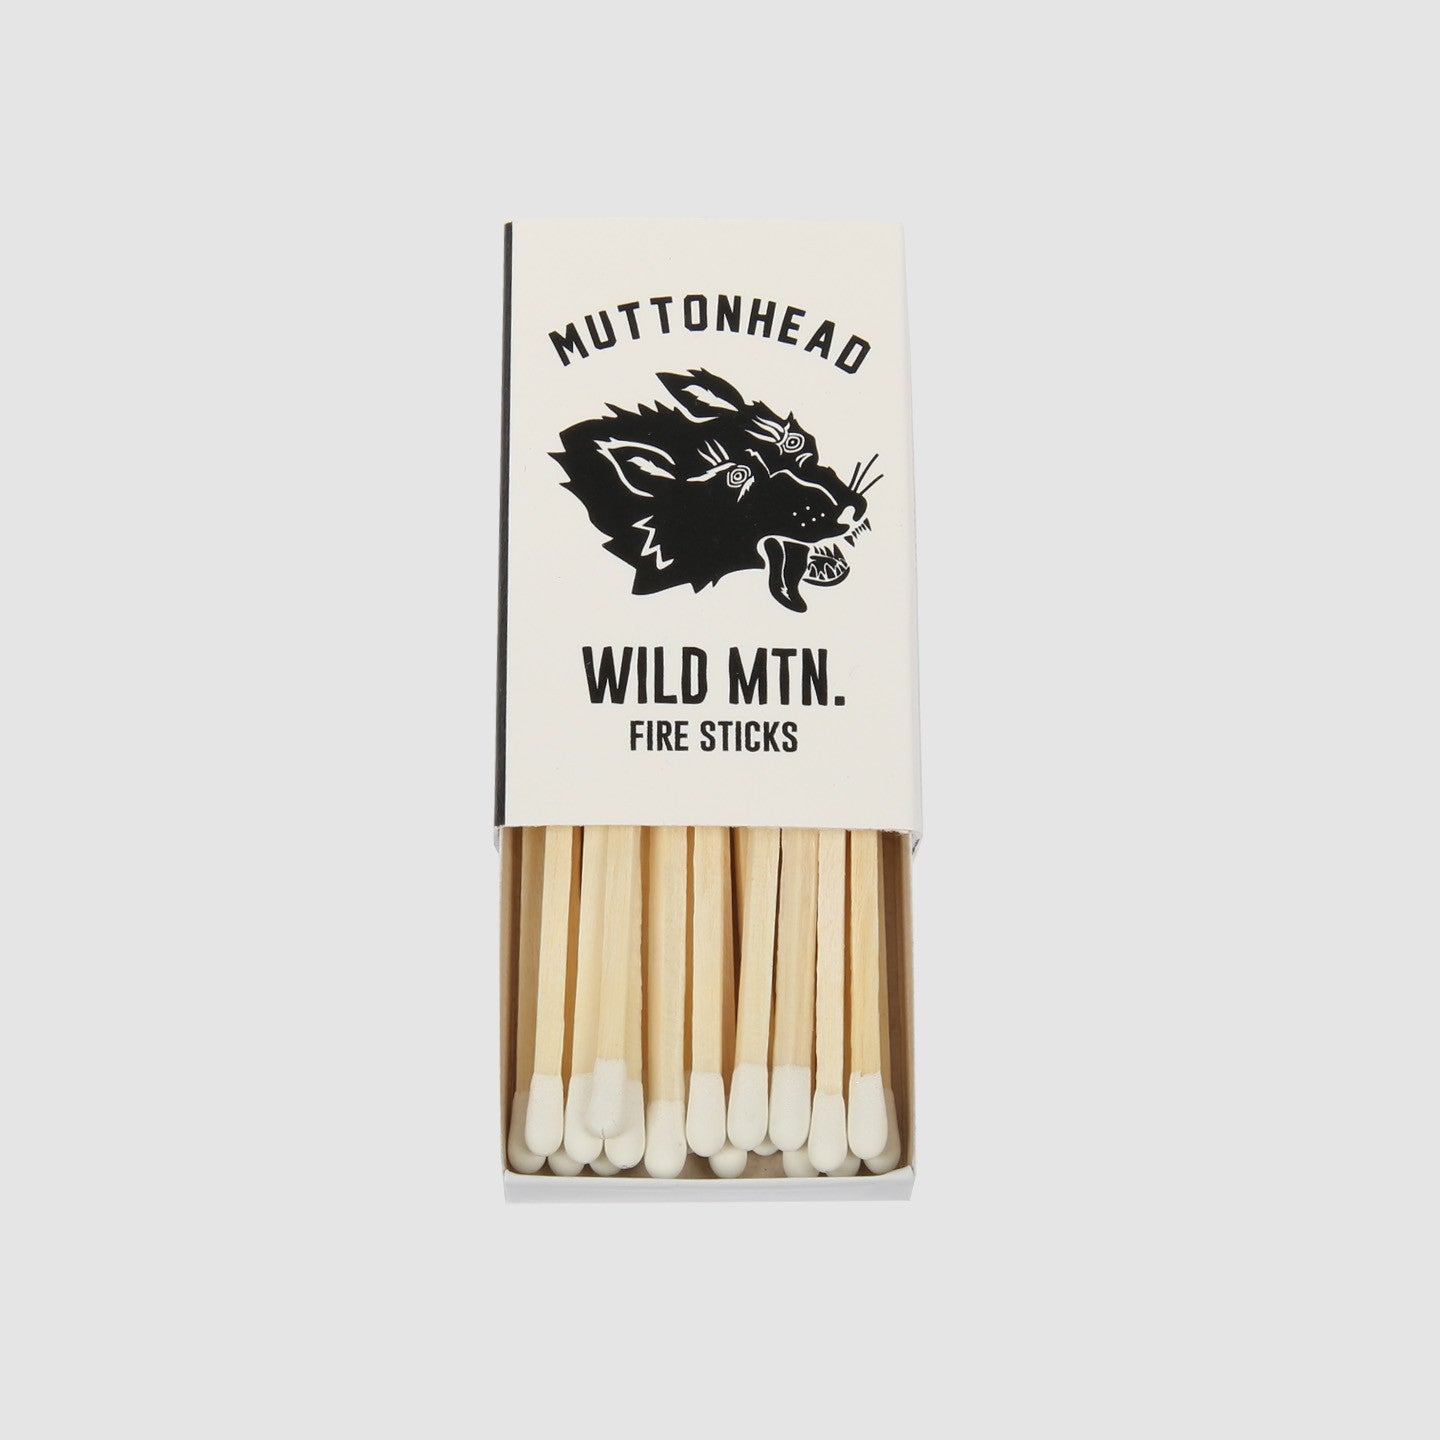 Wild Mtn. Fire Stick Matches